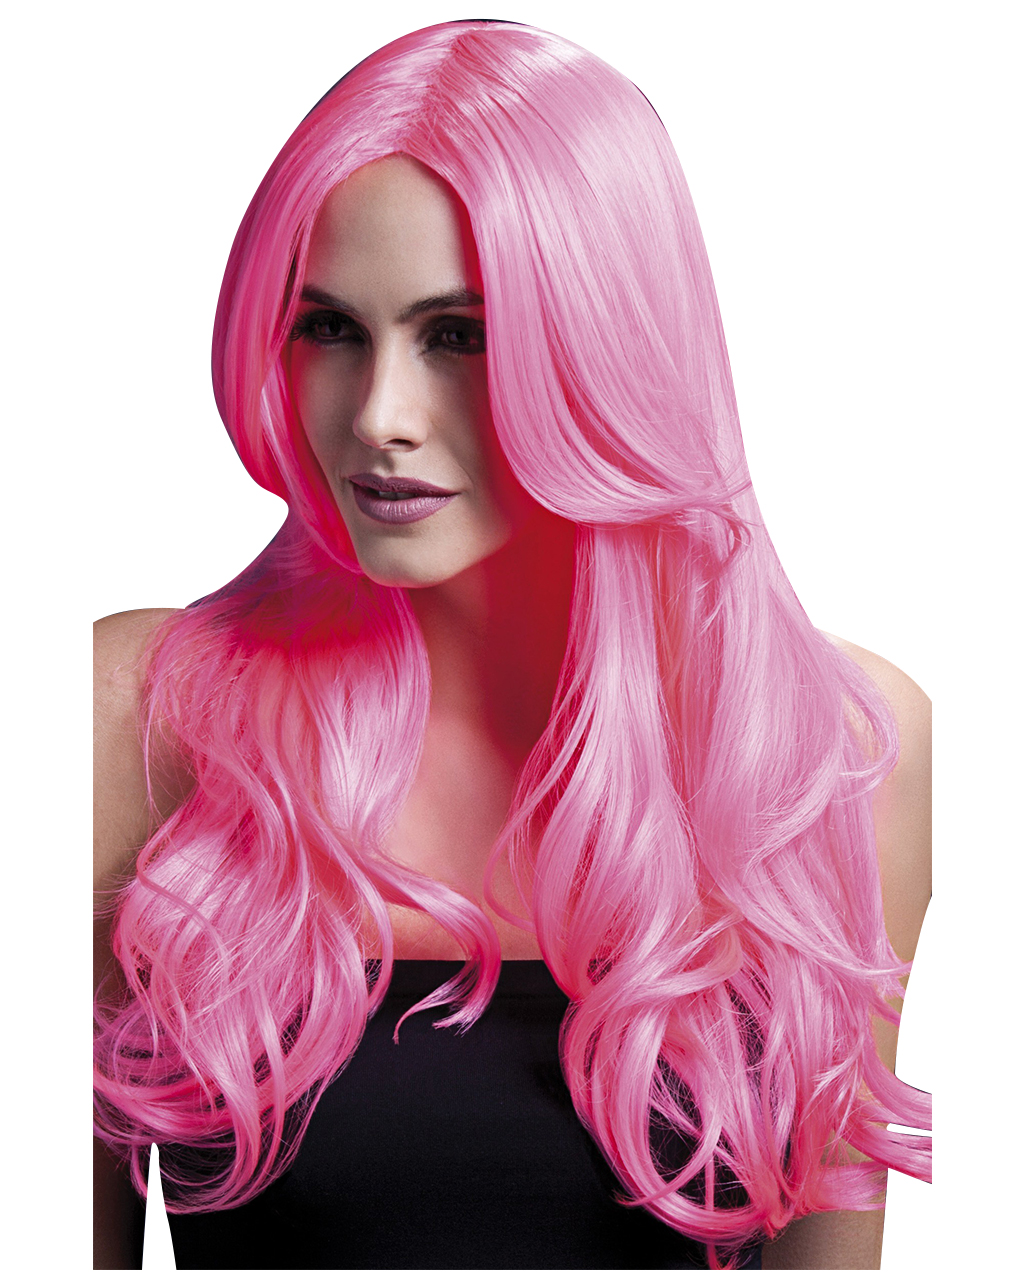 Women Wig Khloe Neon Pink Anime Wig Cosplay Horror Shop Com